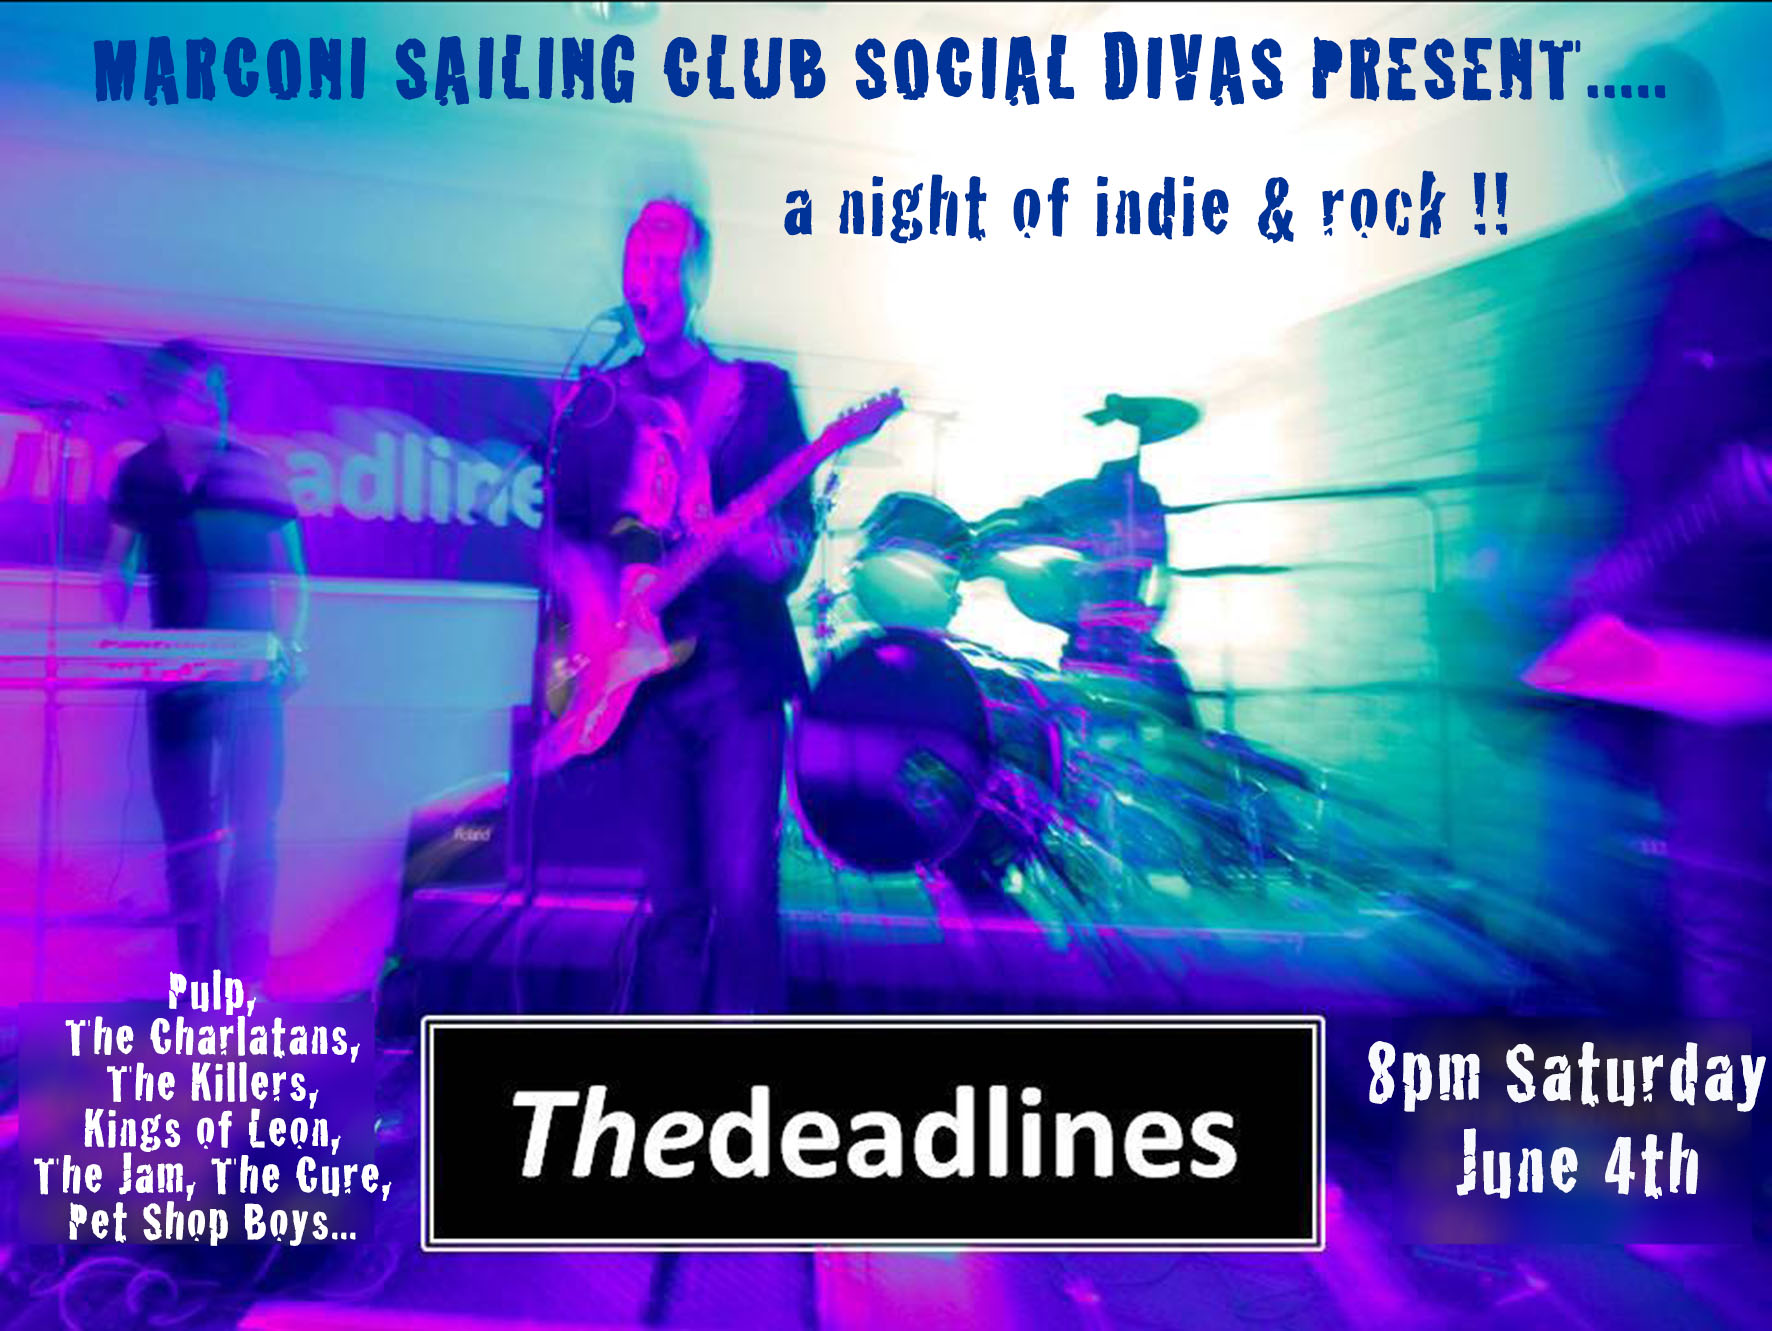 The Deadlines will be playing indie rock covers at MSC on Saturday June 4th.